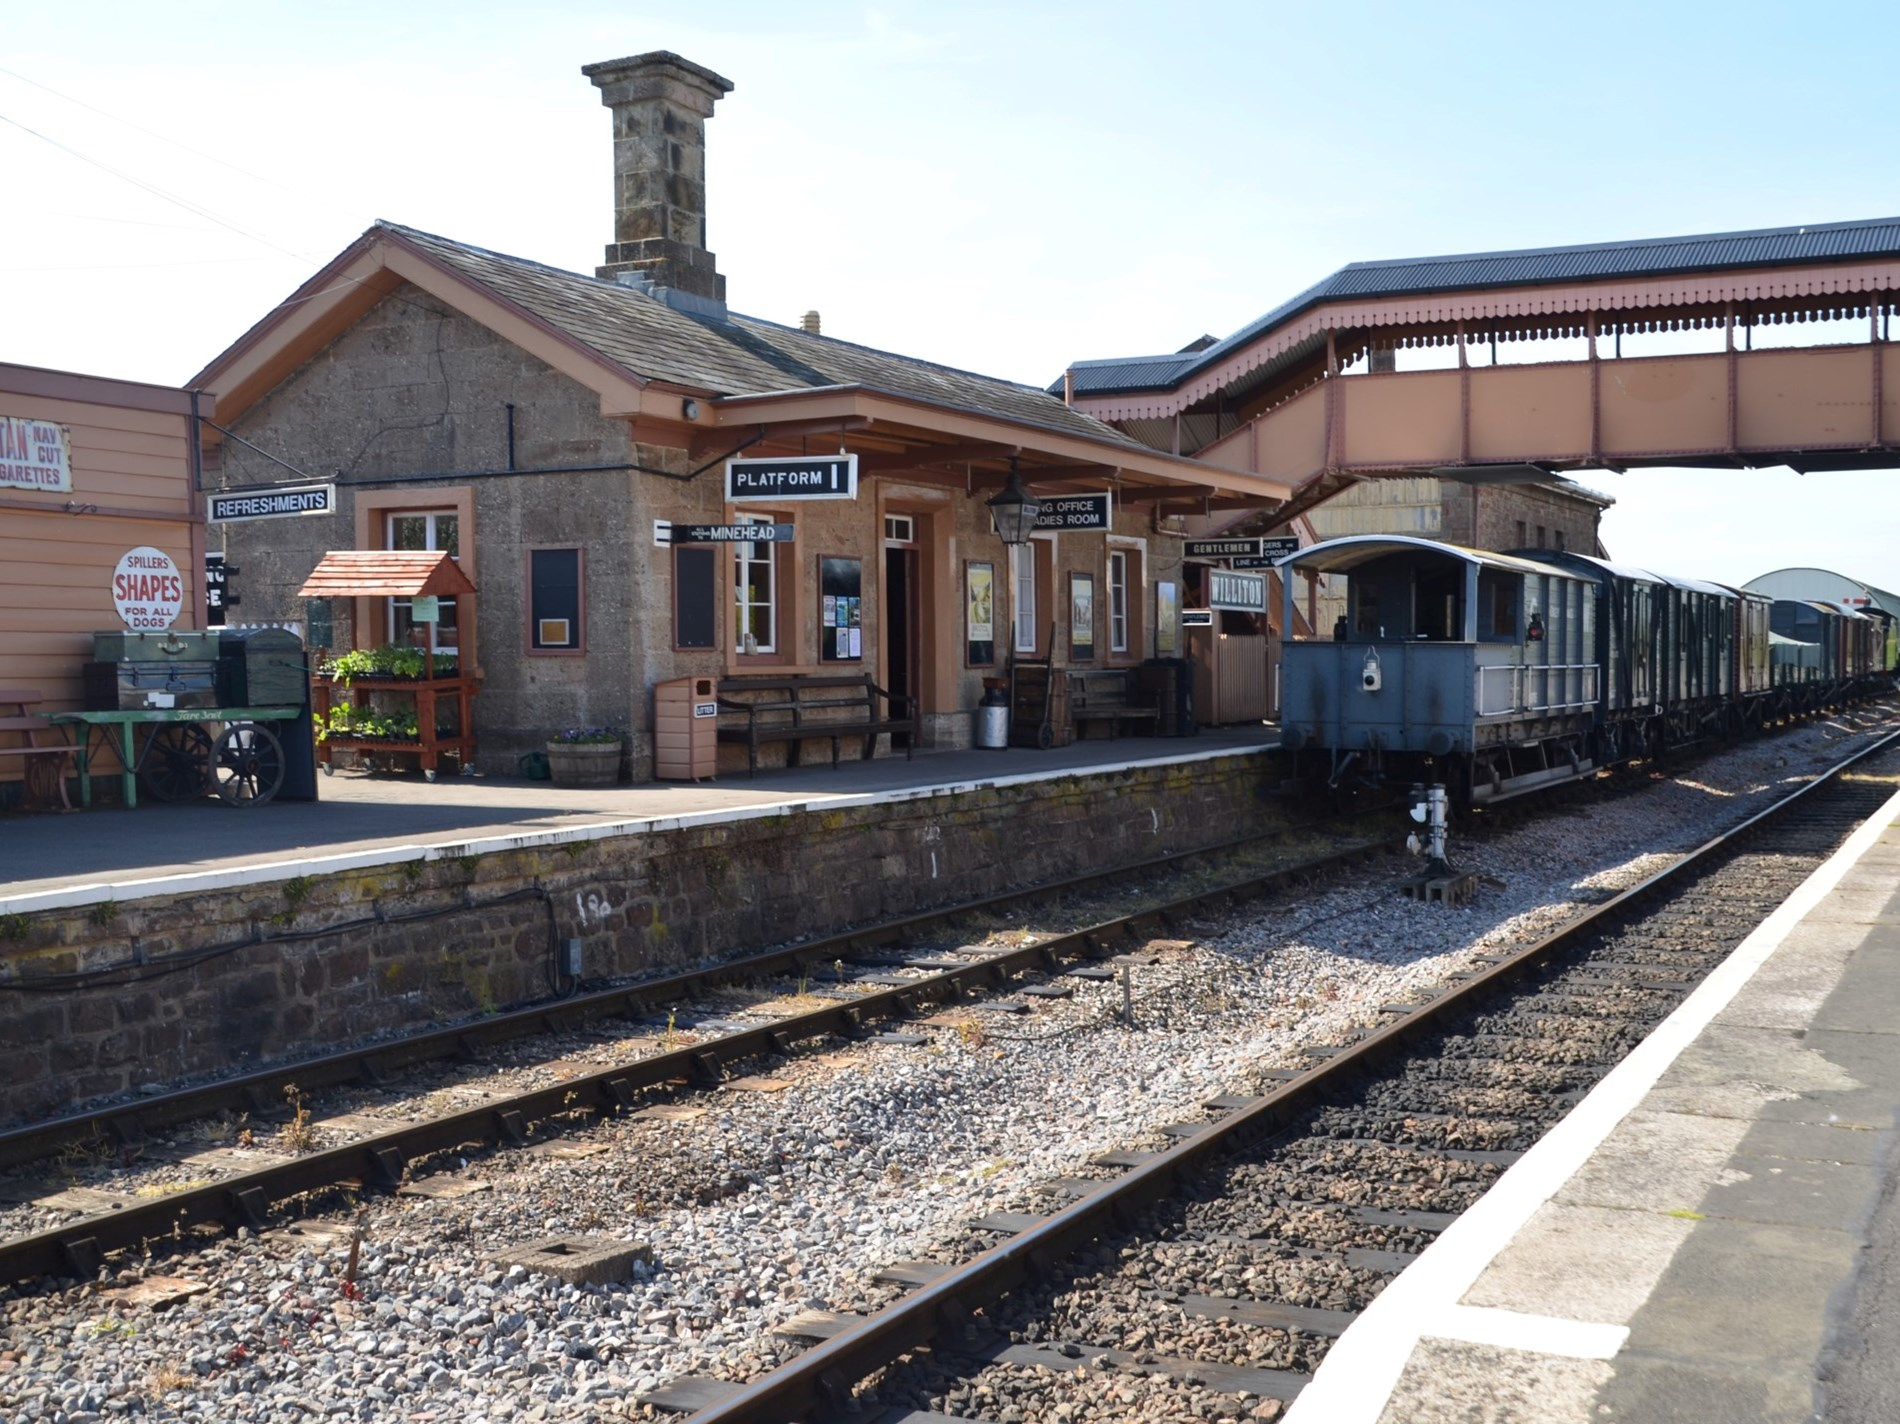 The West Somerset Railway is conveniently located behind the main farmhouse